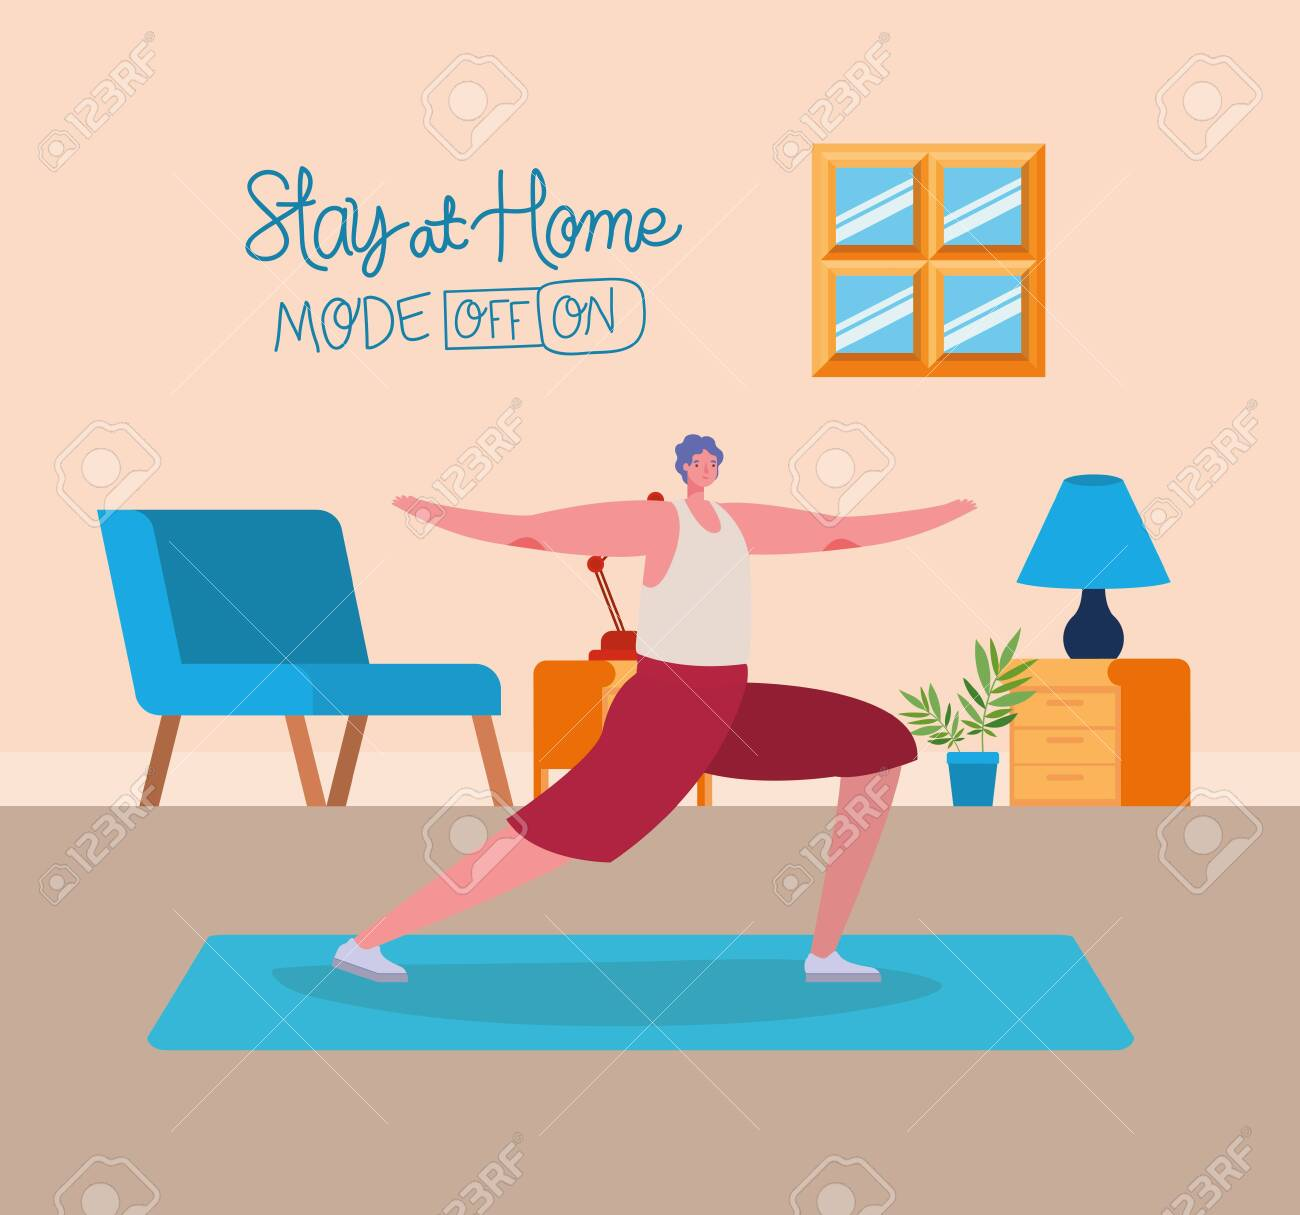 Man cartoon doing exercise design of Stay at home and activities theme Vector illustration - 149608097